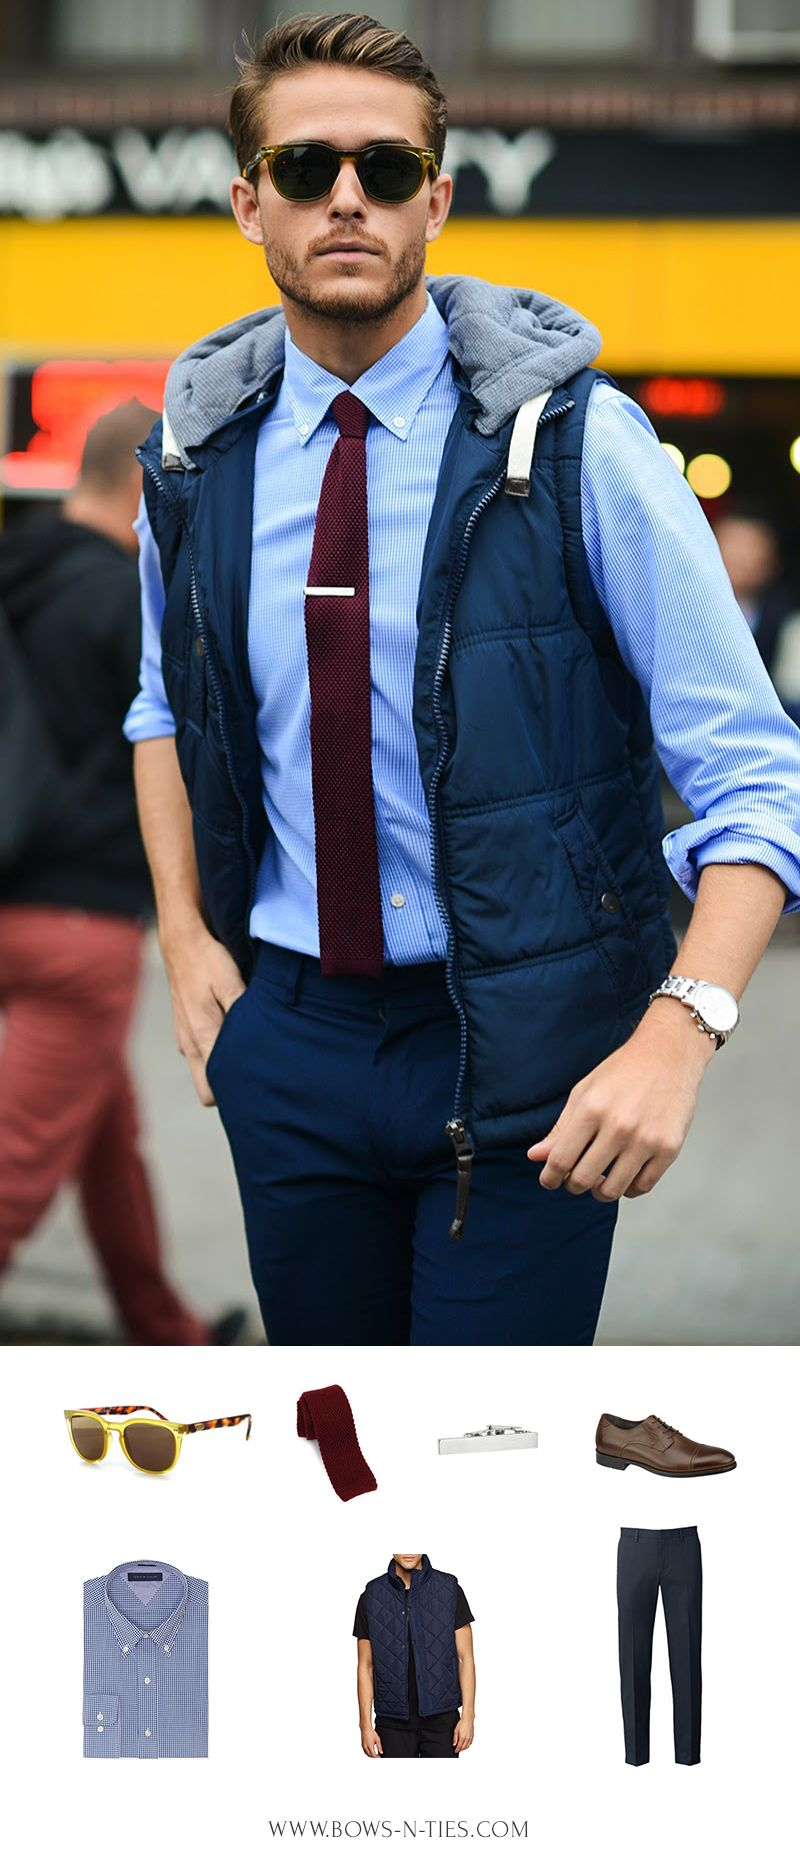 """Adam Galla featuring Spektre glasses, knit tie by Bows-N-Ties, pants by Topman, shoes by Johnston & Murphy, shirt by Tommy Hilfiger, vest by Cotton On. Get this look HERE """""""